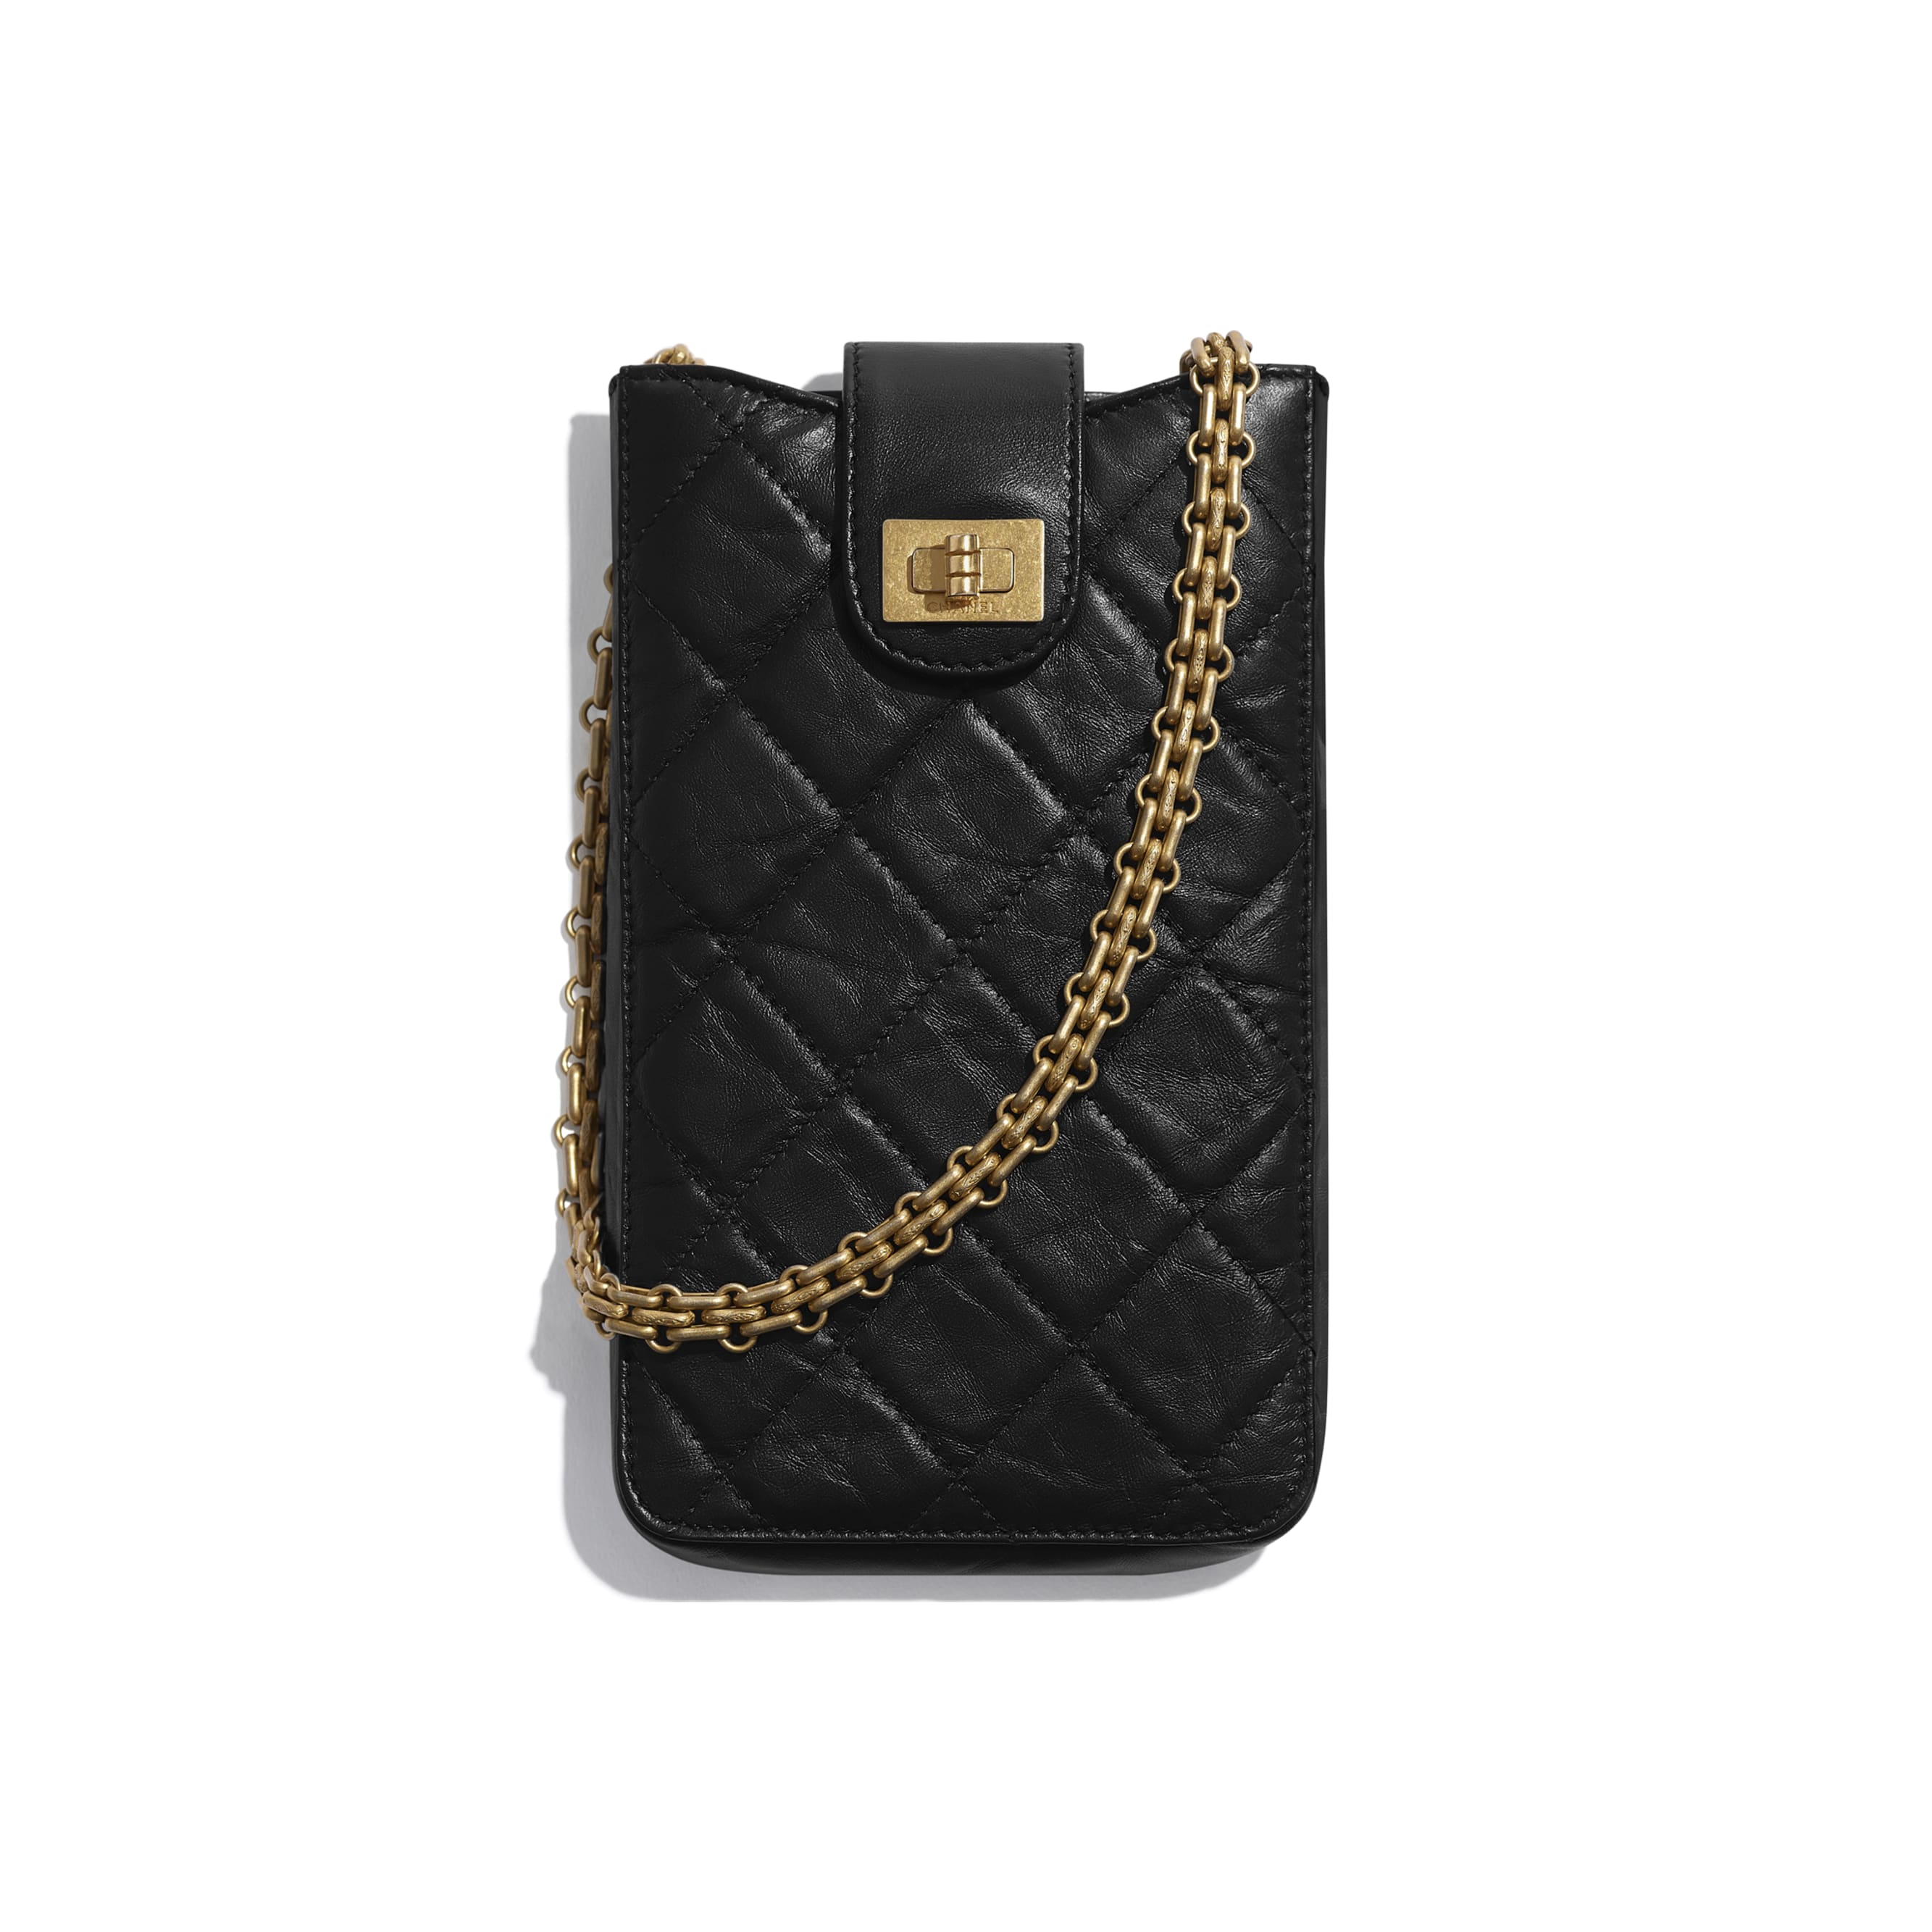 2.55 Phone Holder with Chain - Black - Aged Calfskin & Gold-Tone Metal - CHANEL - Default view - see standard sized version